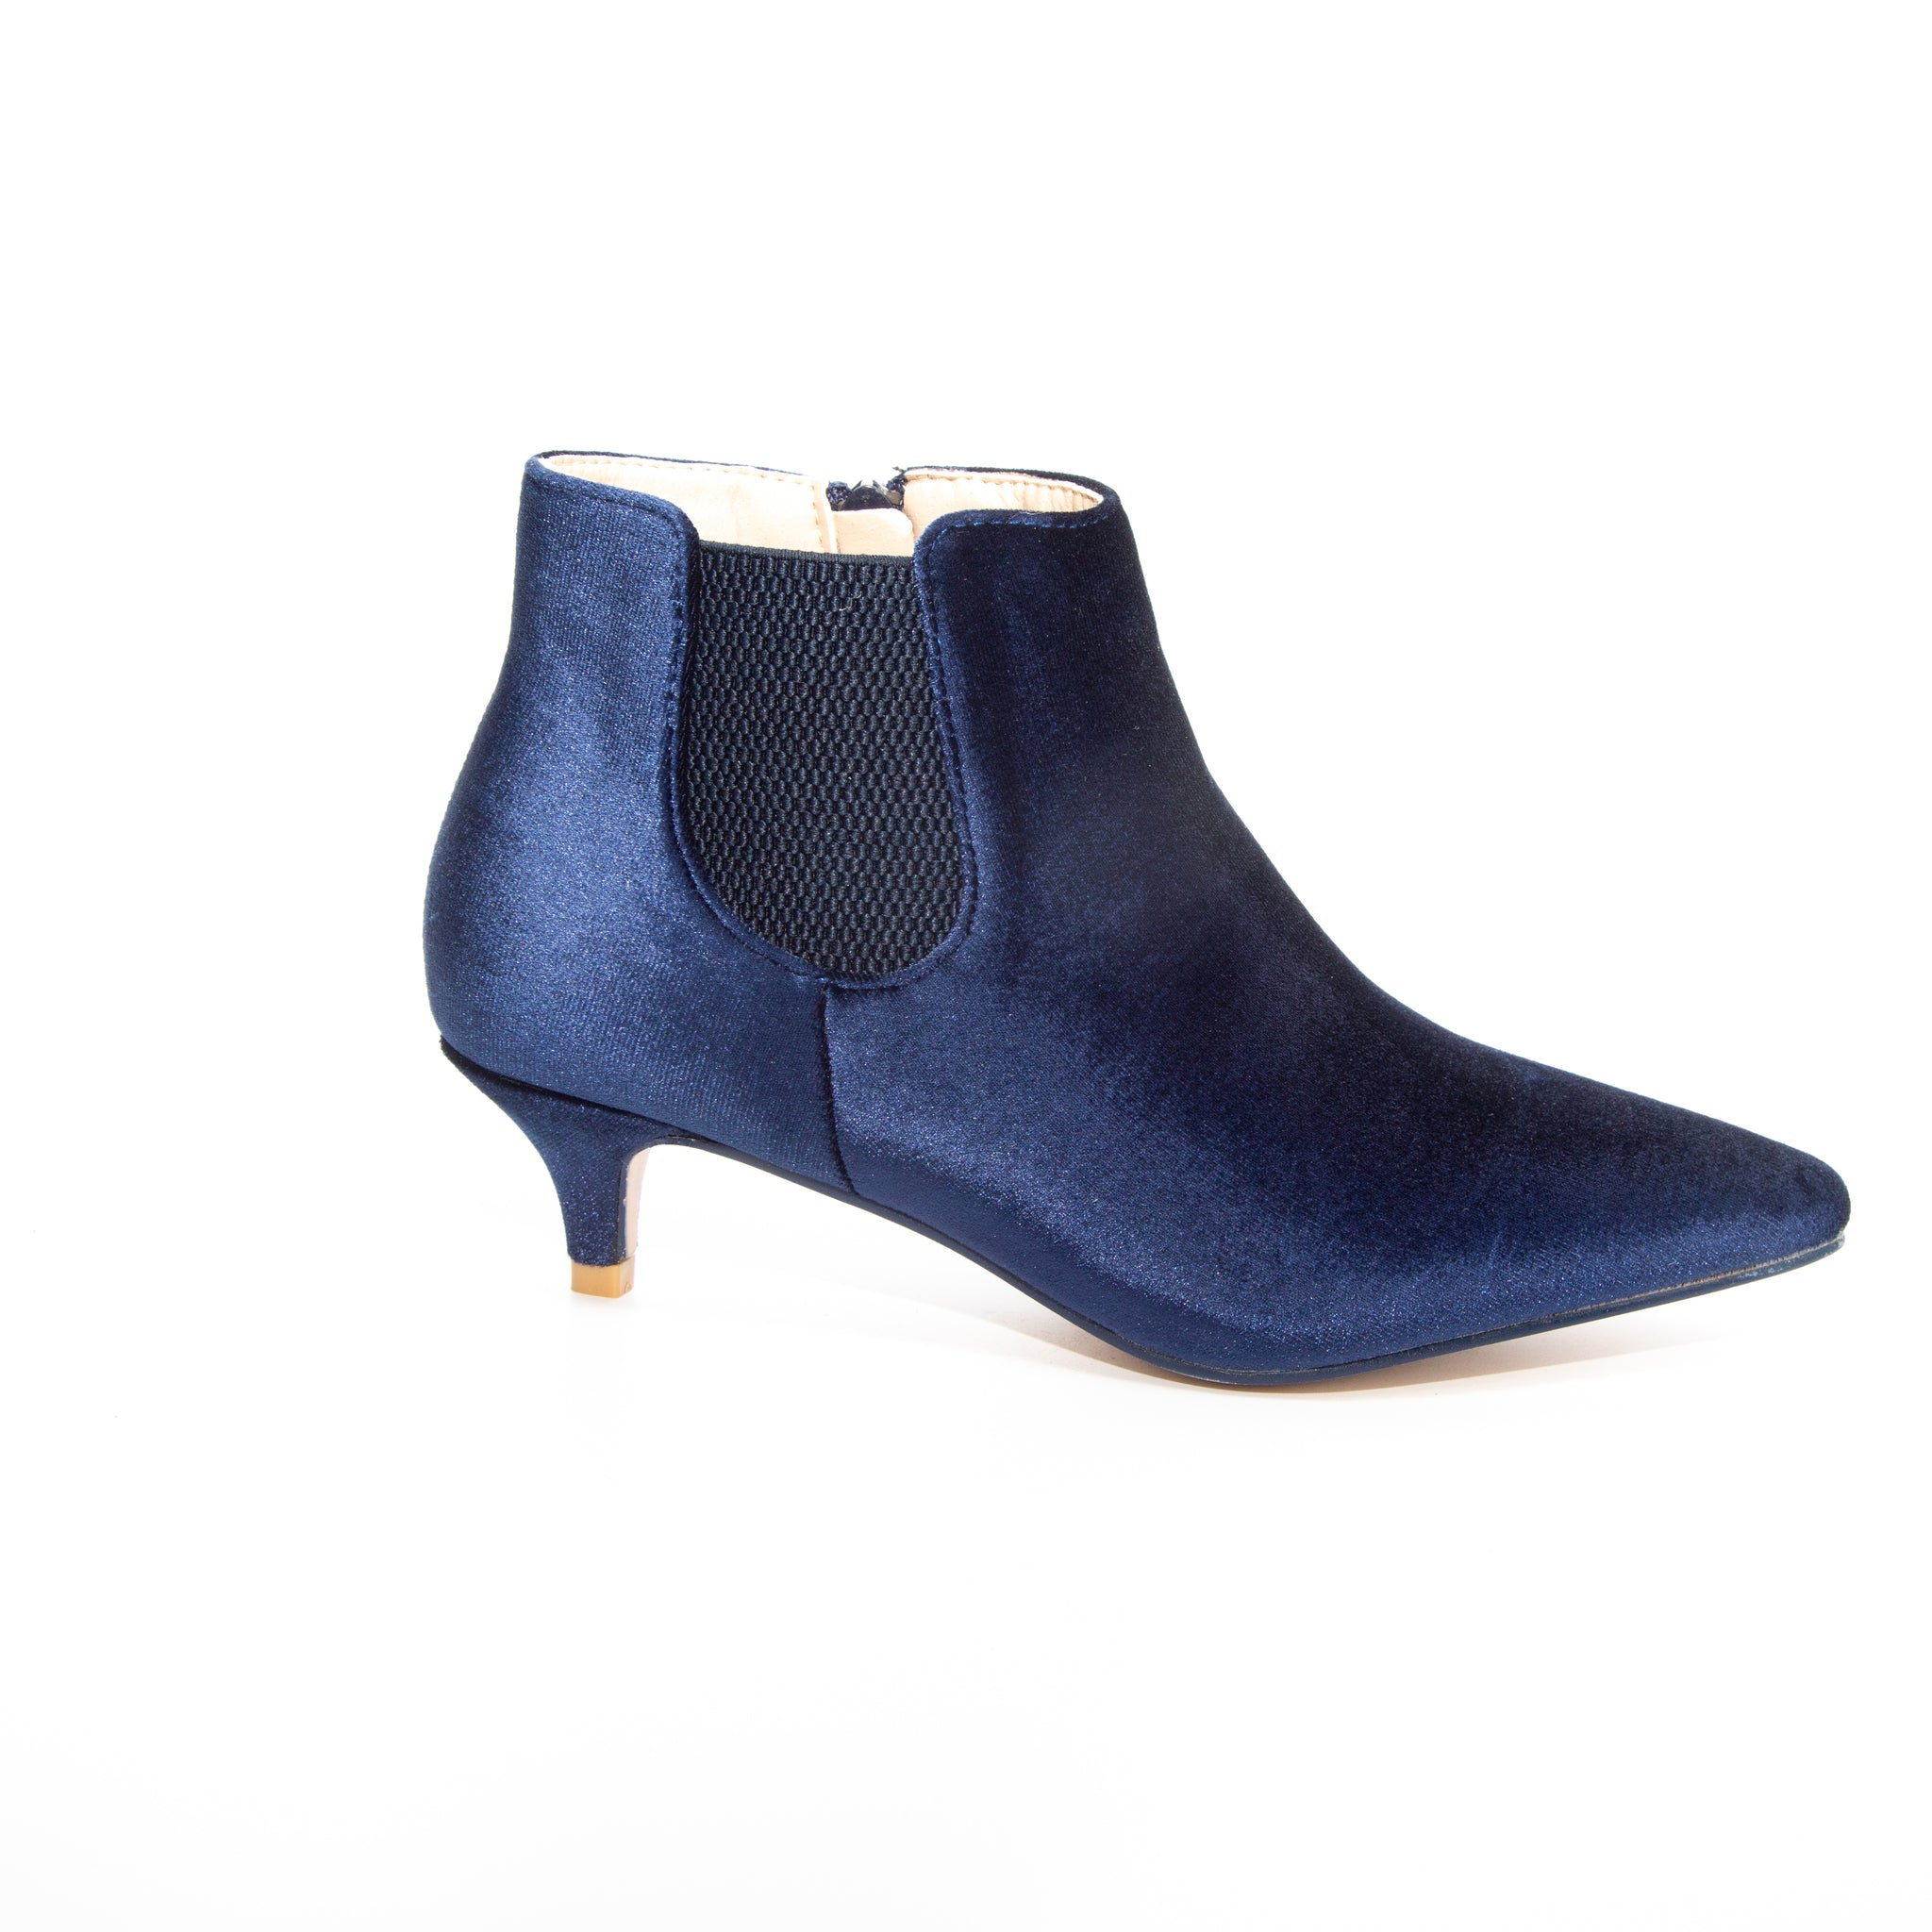 Kitten by Dolce Nome | Pull-On Heeled Booties in Blue (side view)